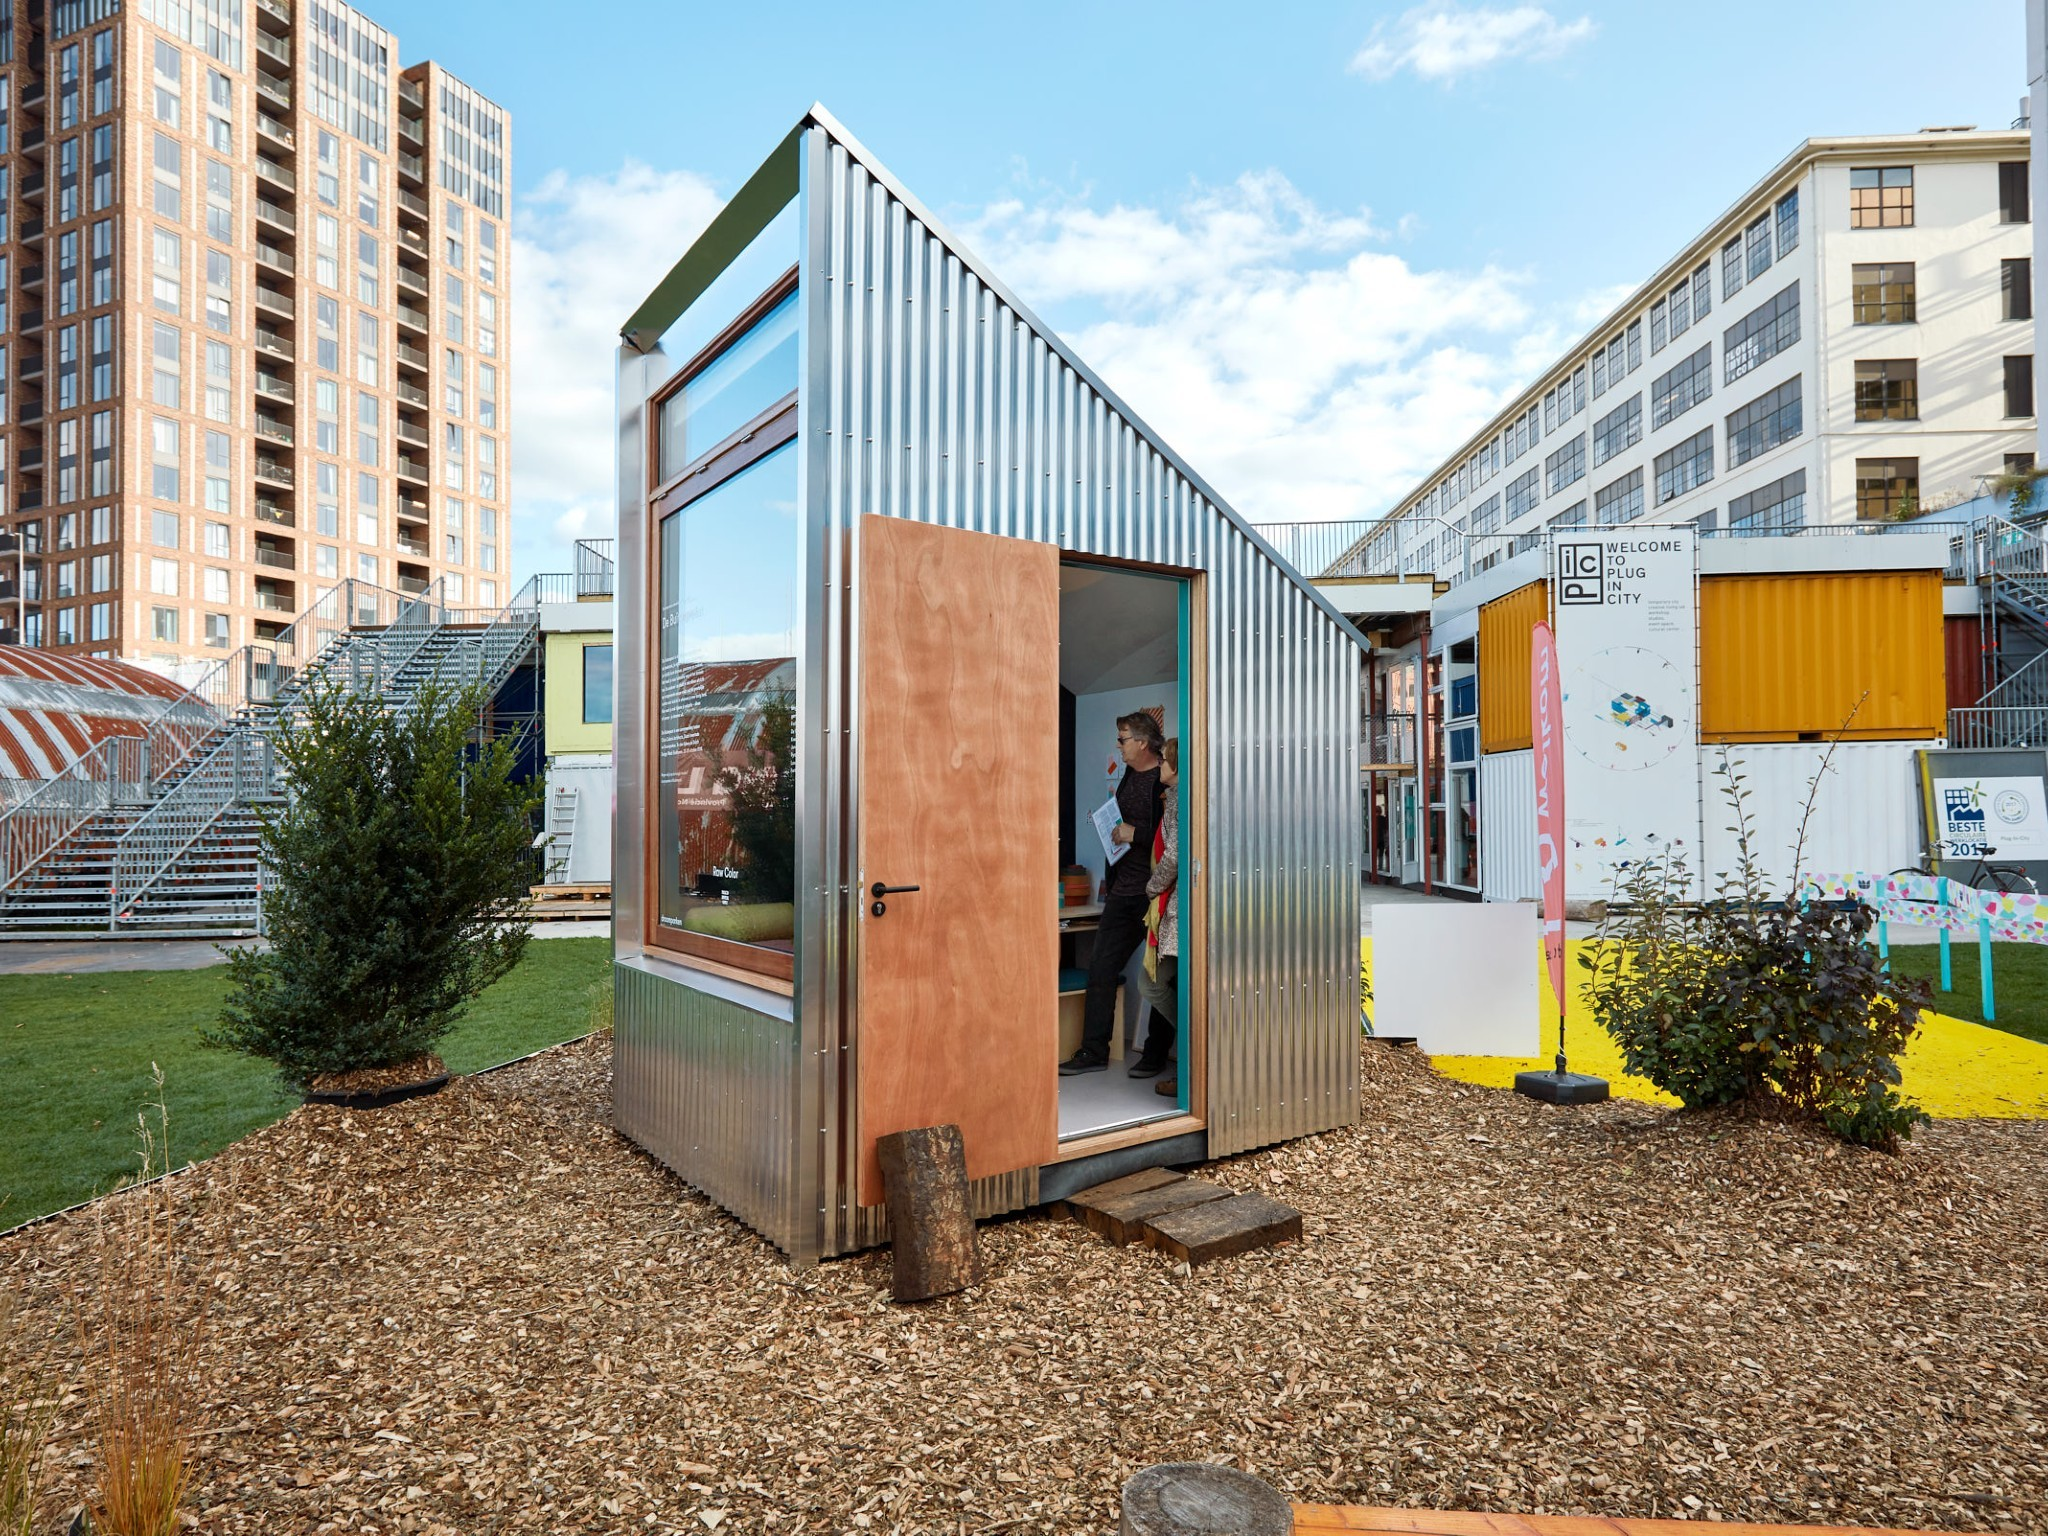 Could these tiny one-person offices be the future of the workplace?